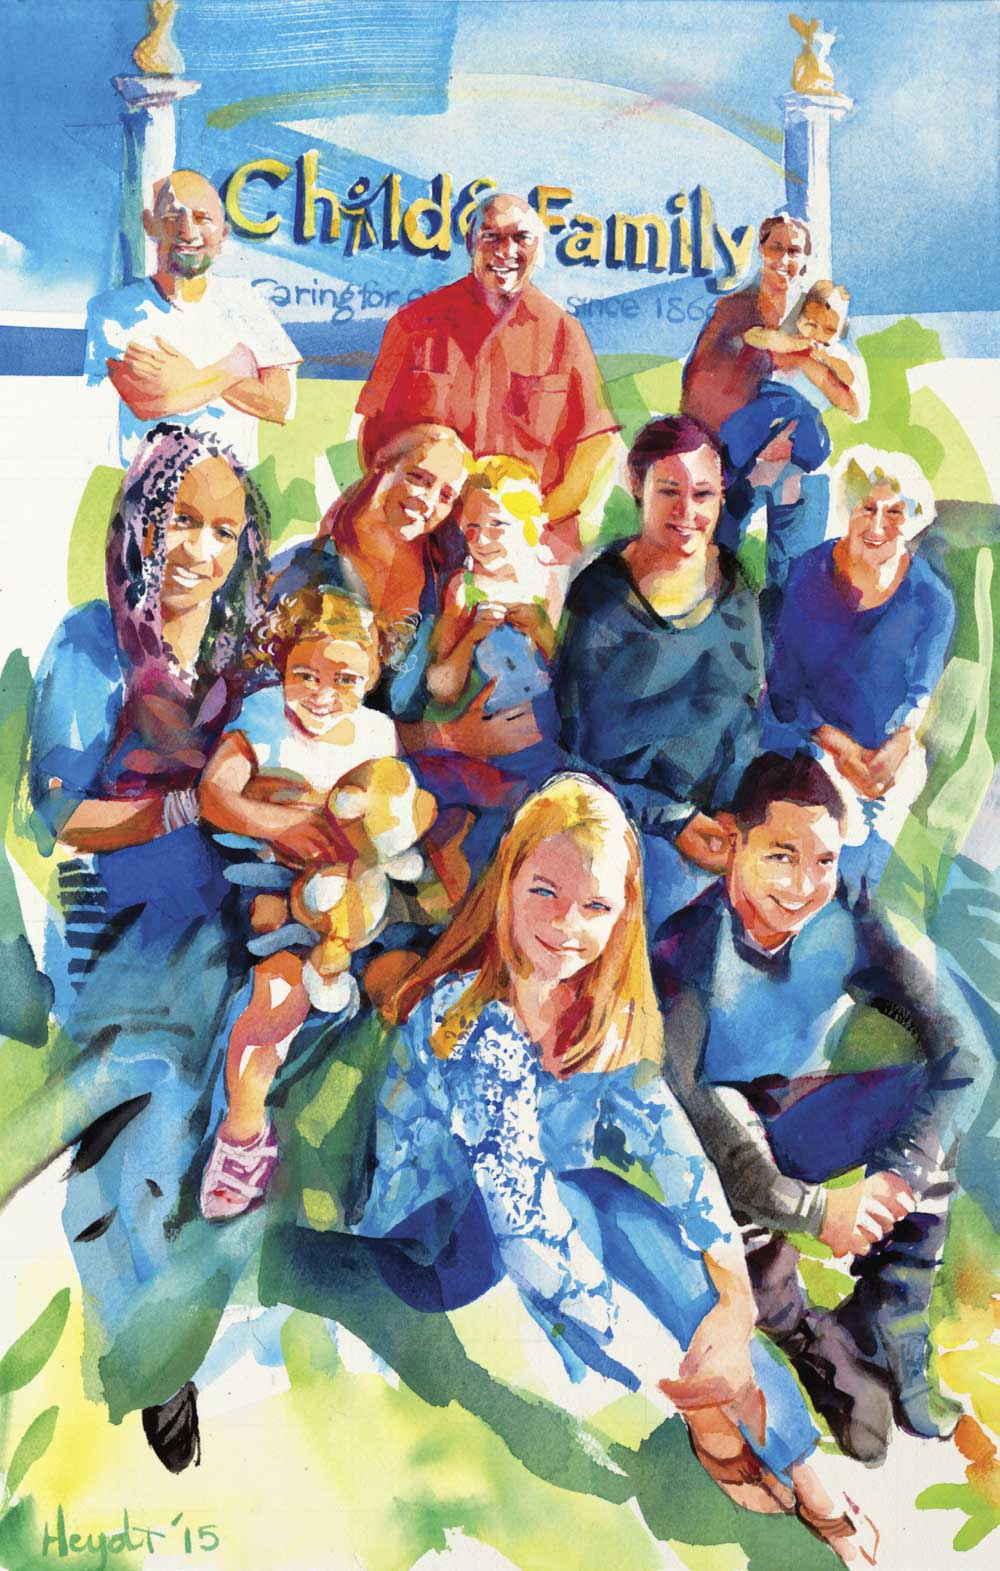 Caring for our Community, Child & Family services